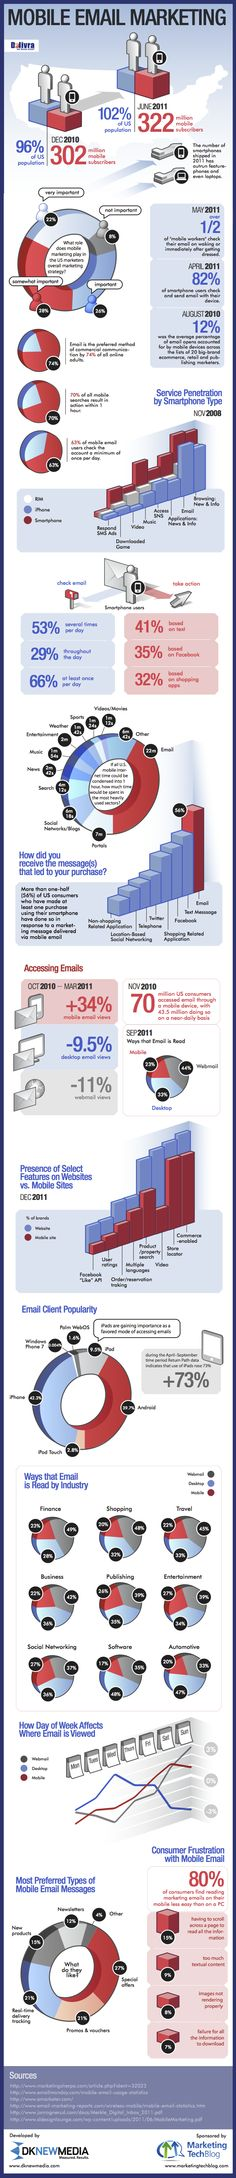 E-mail marketing mobile #infographic #Internet #marketing